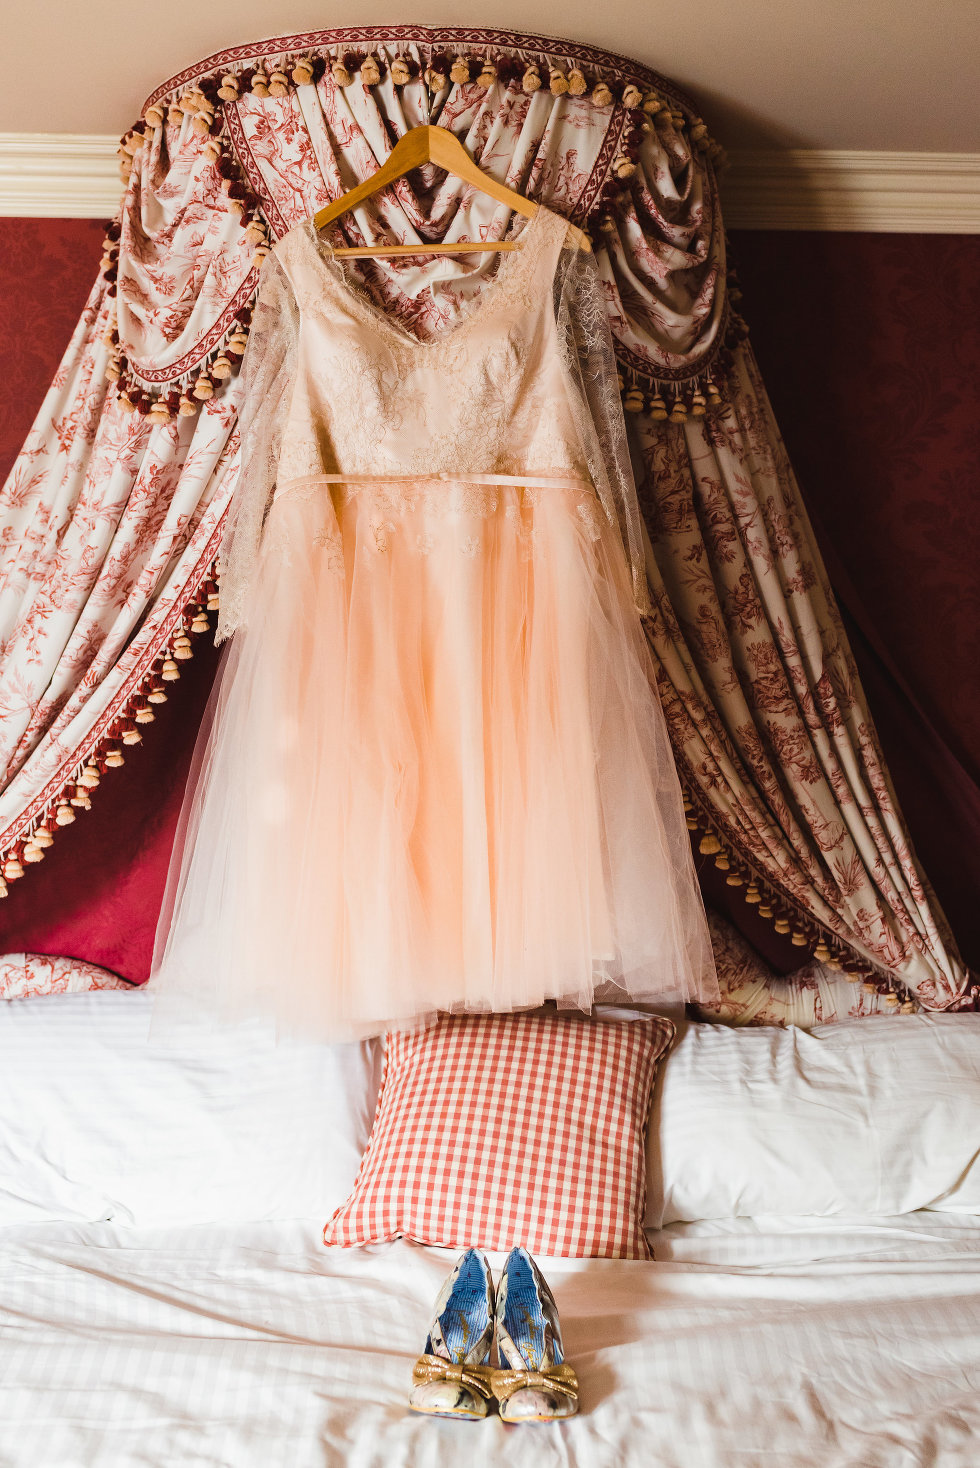 wedding dress hanging on headboard above white bed and wedding shoes Toronto Wedding photographer